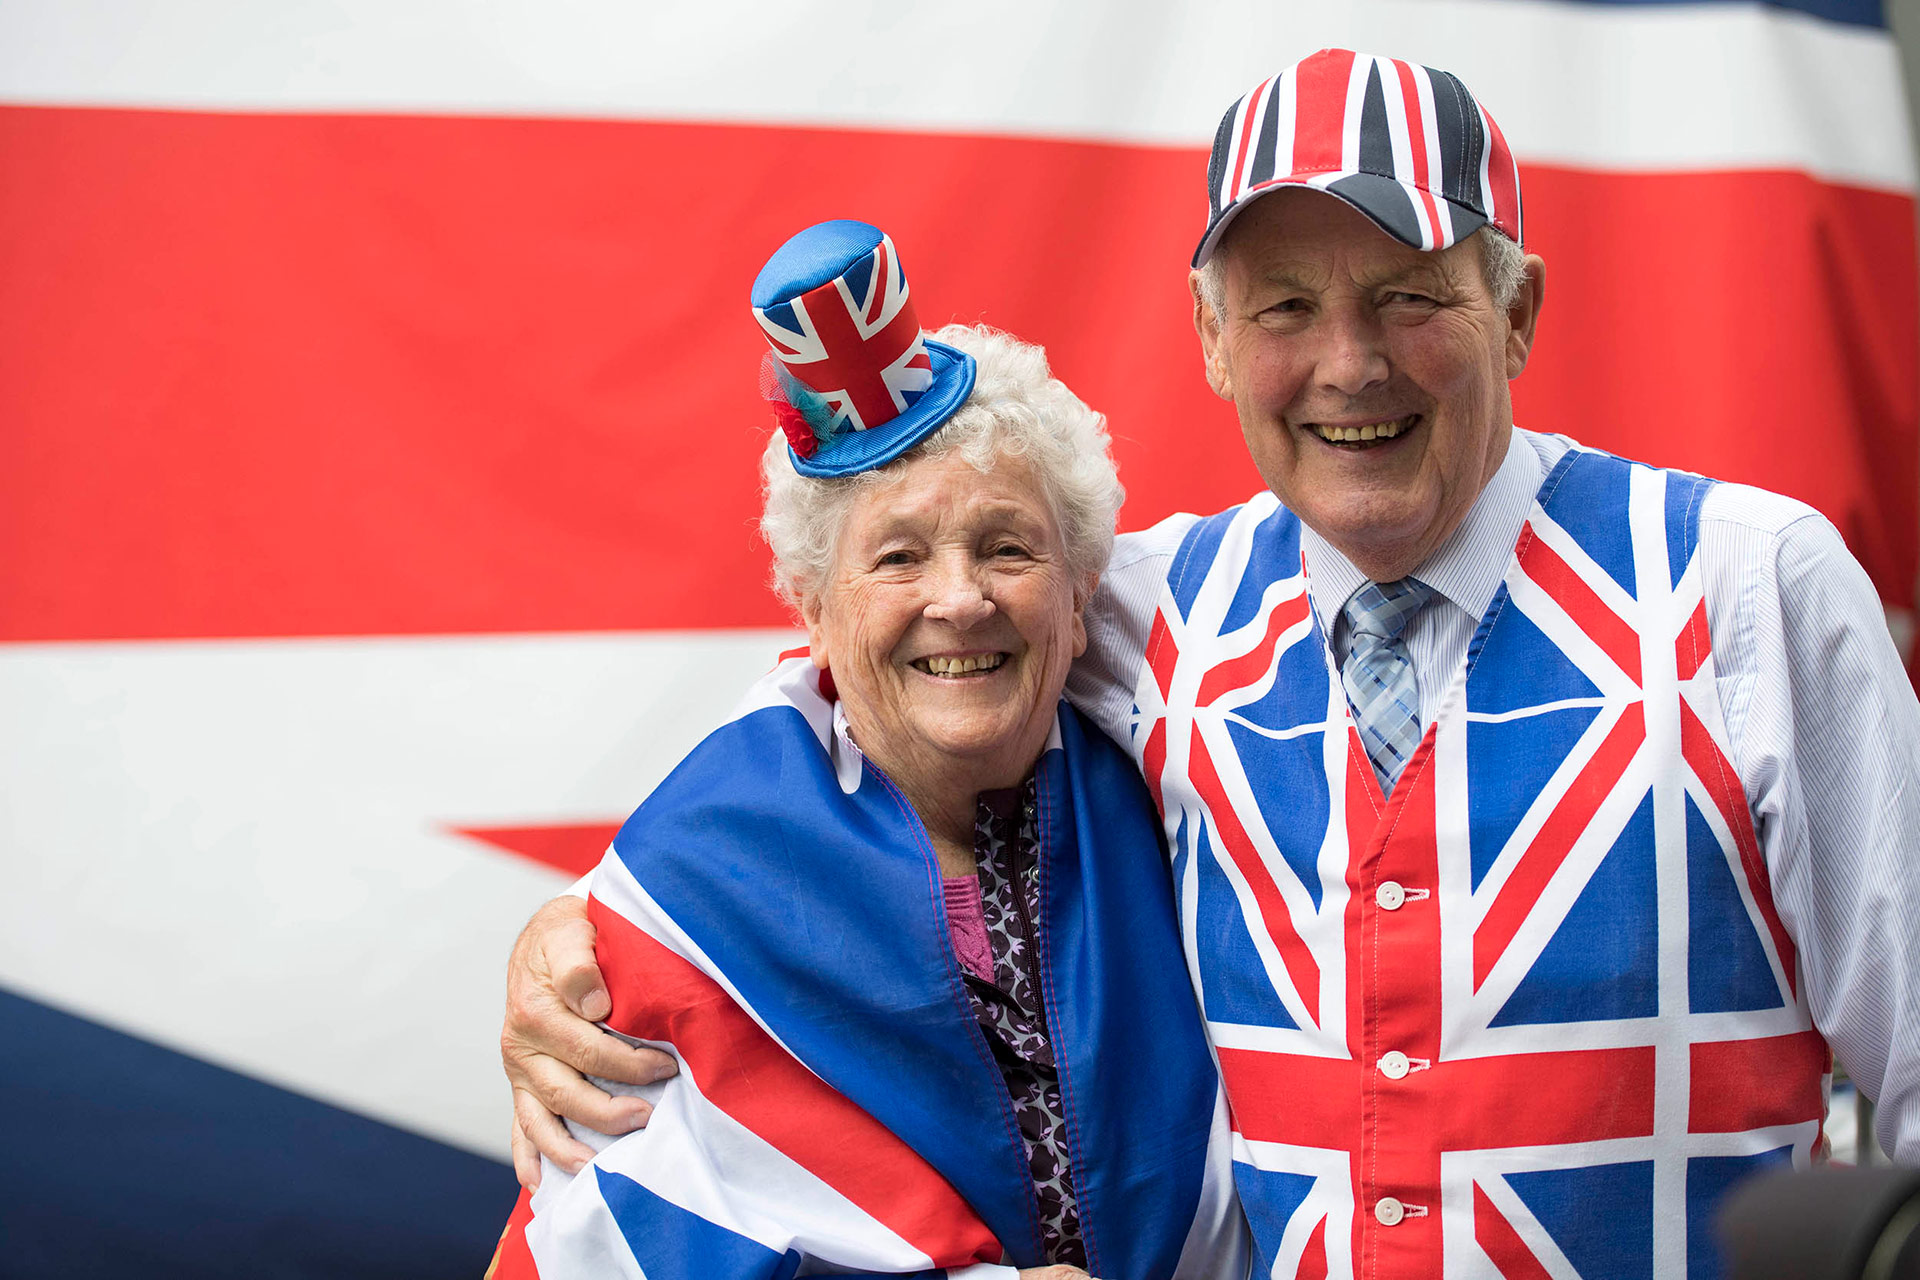 Two pensioners are photographed in union jack clothing during an Olympic parade Manchester. Olympic photography by Manchester Photographer